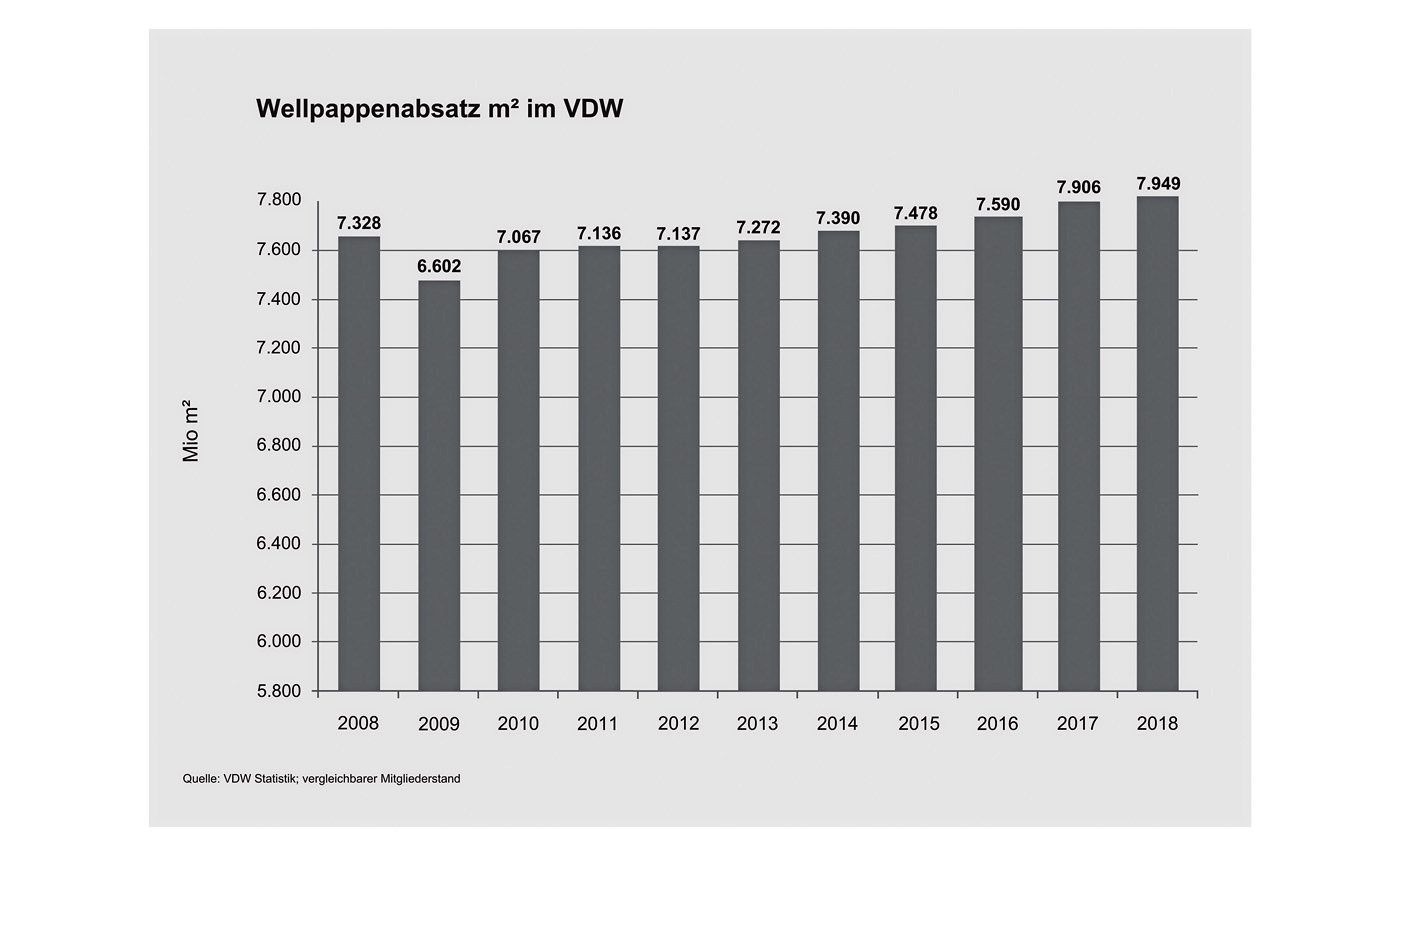 Quelle: Verband der Wellpappen-Industrie (VDW)